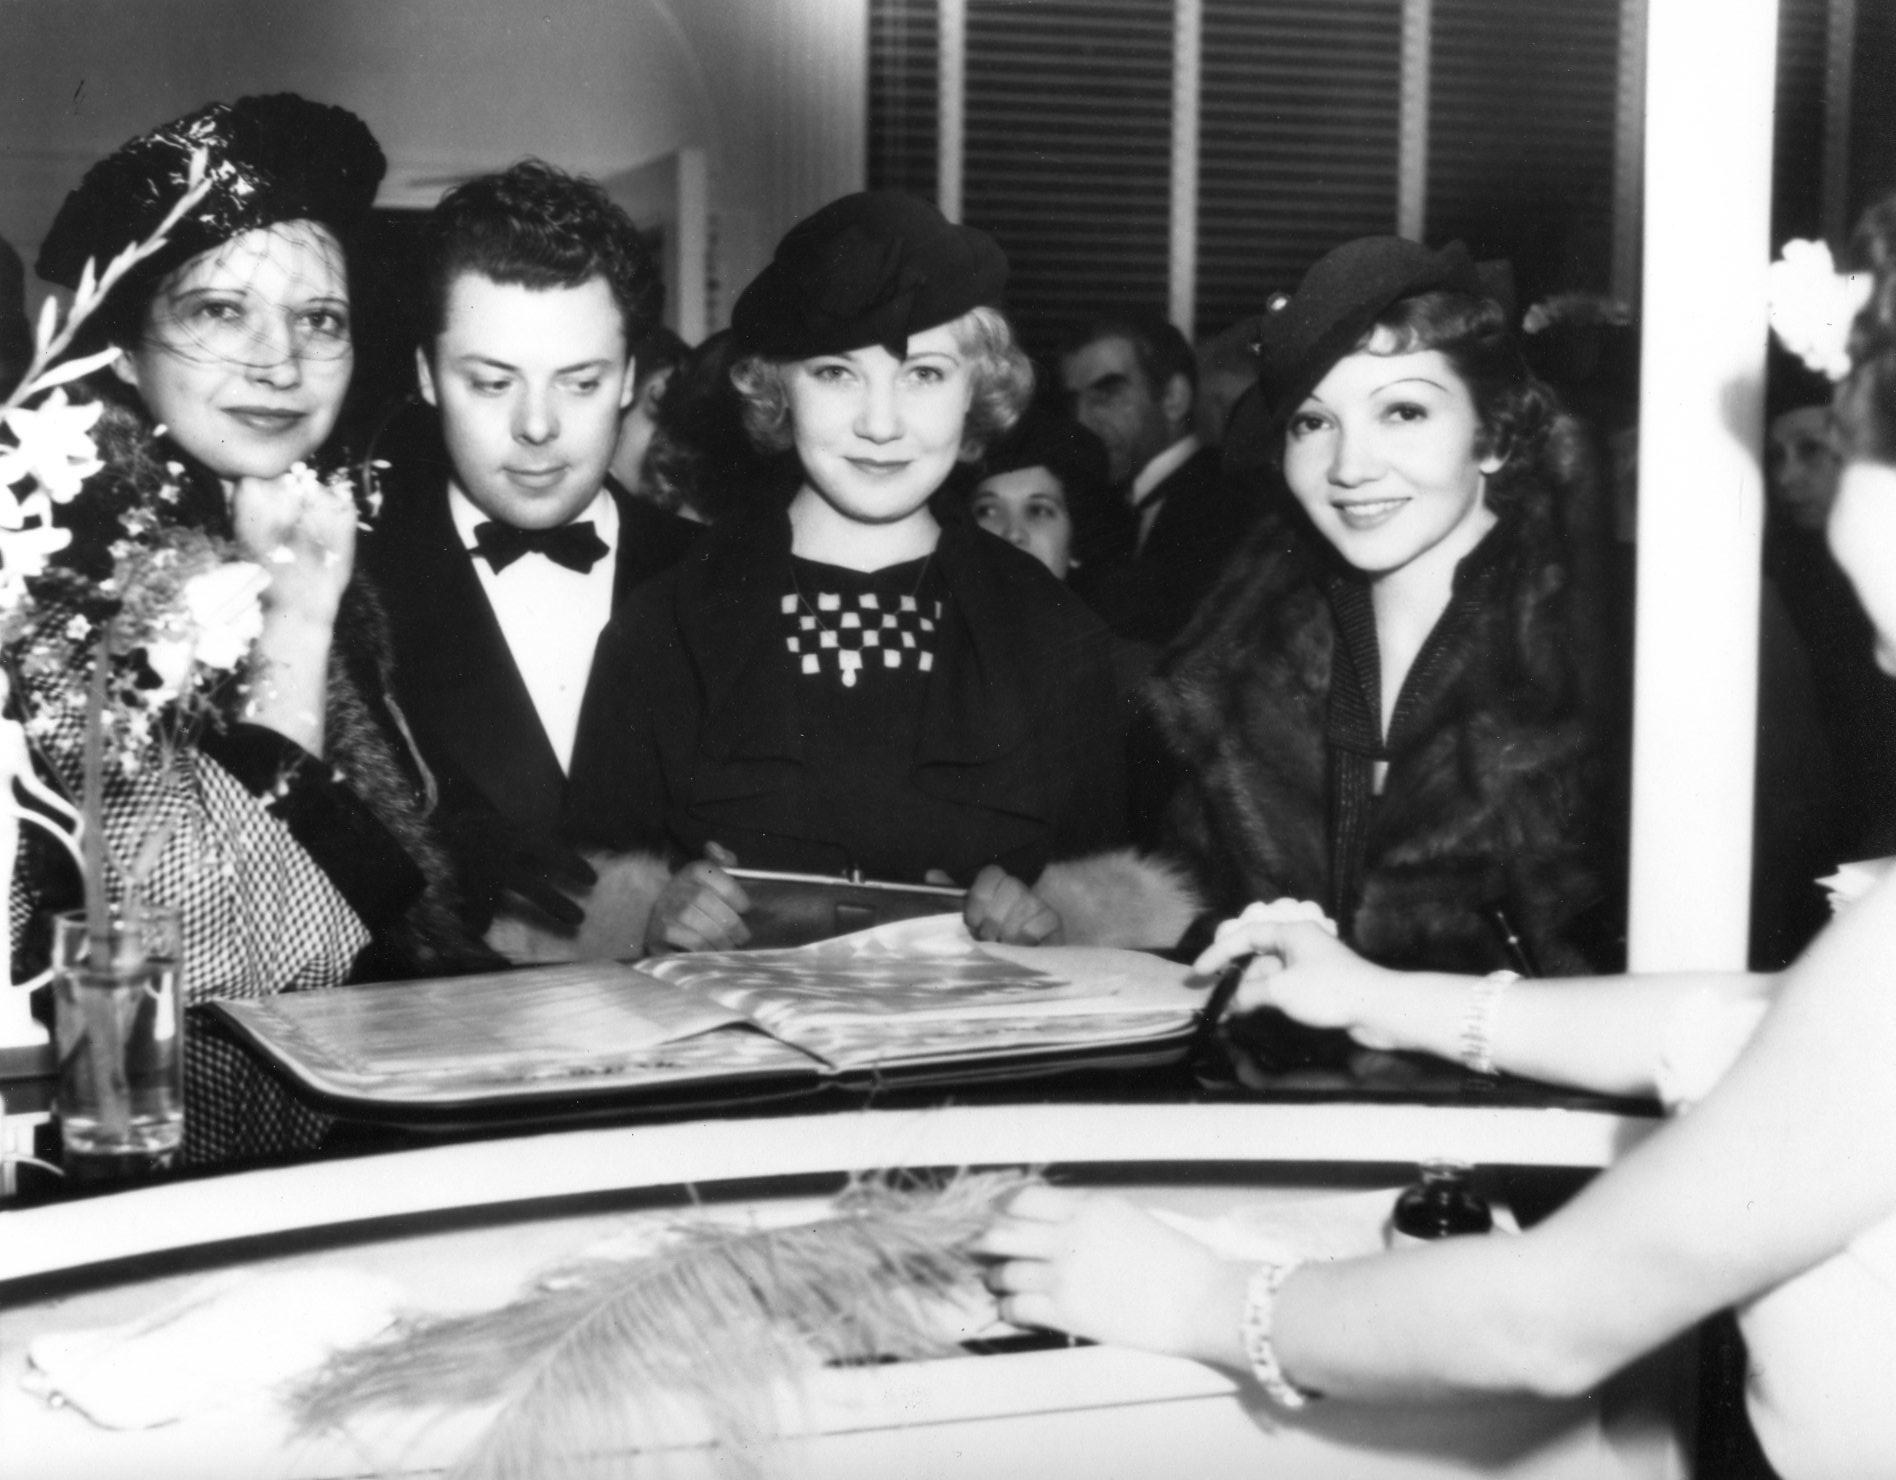 From left to right: Kay Francis, Perc Westmore, Una Merkel, and Claudette Cobert. Westmore Salon opening, April 1935.